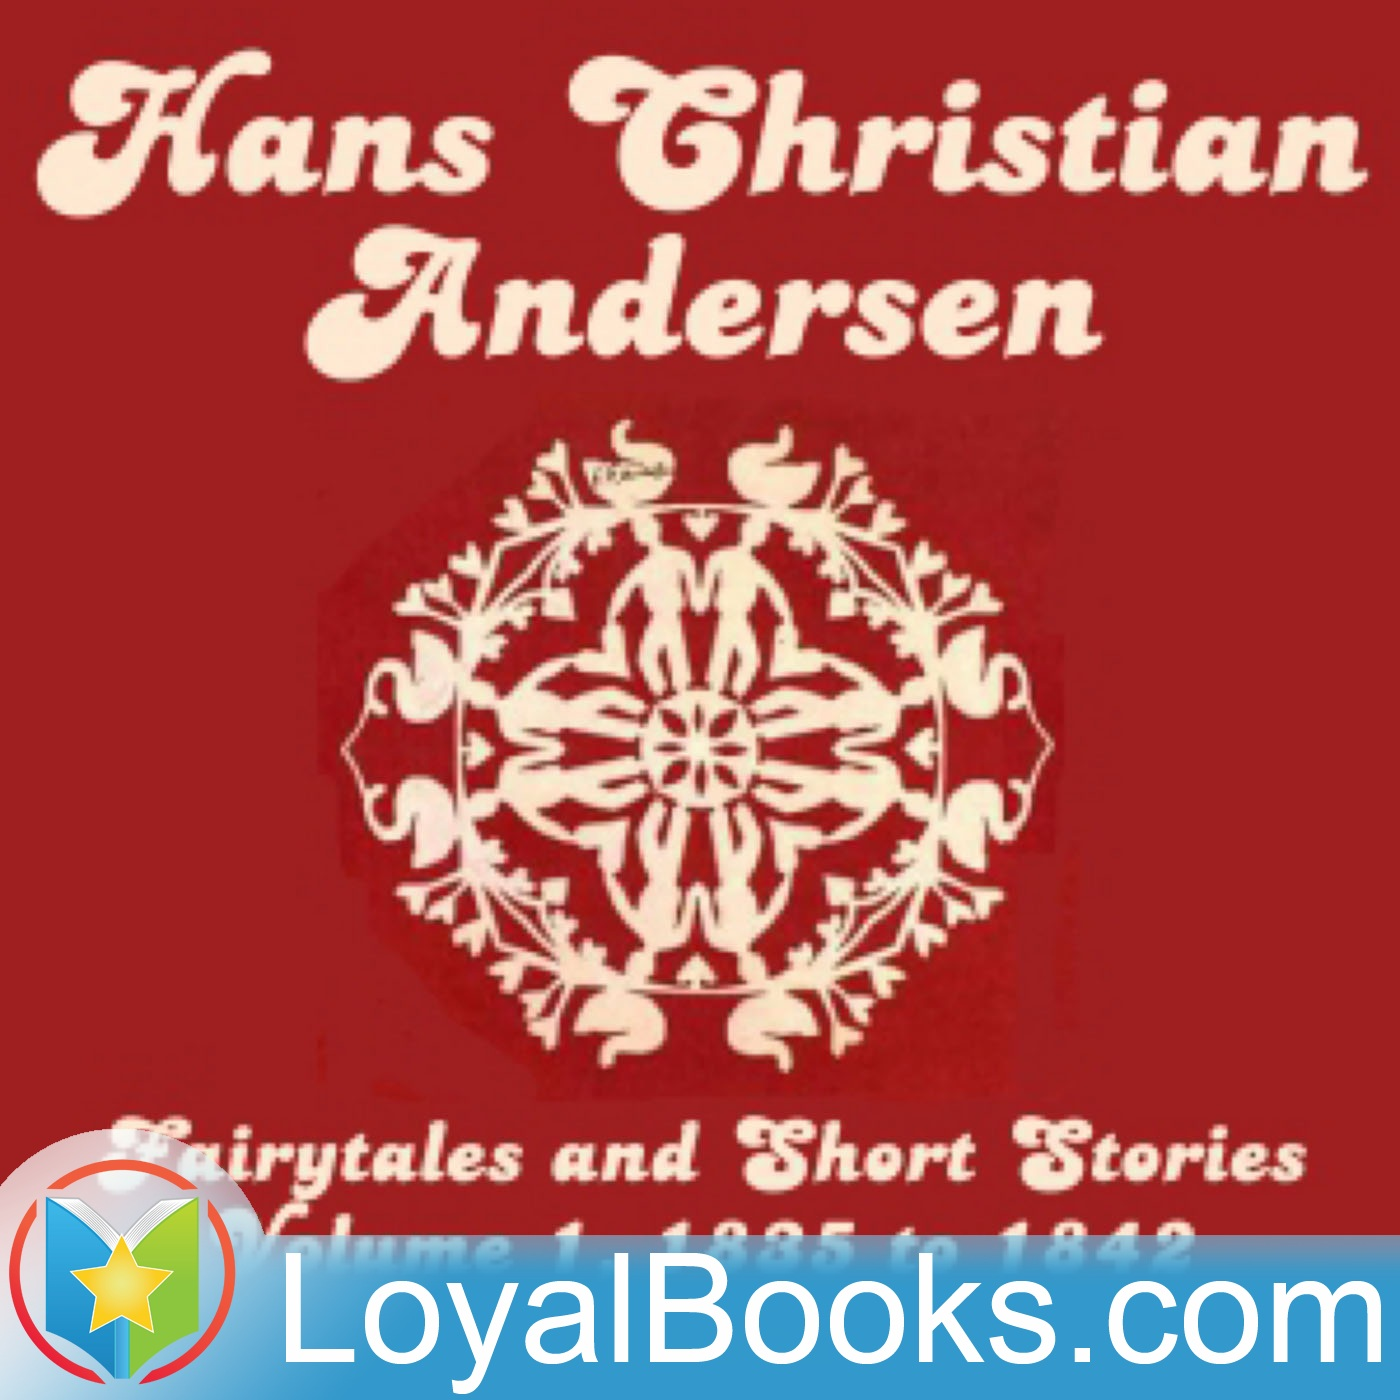 <![CDATA[Hans Christian Andersen: Fairytales and Short Stories Volume 1, 1835 to 1842 by Hans Christian Andersen]]>